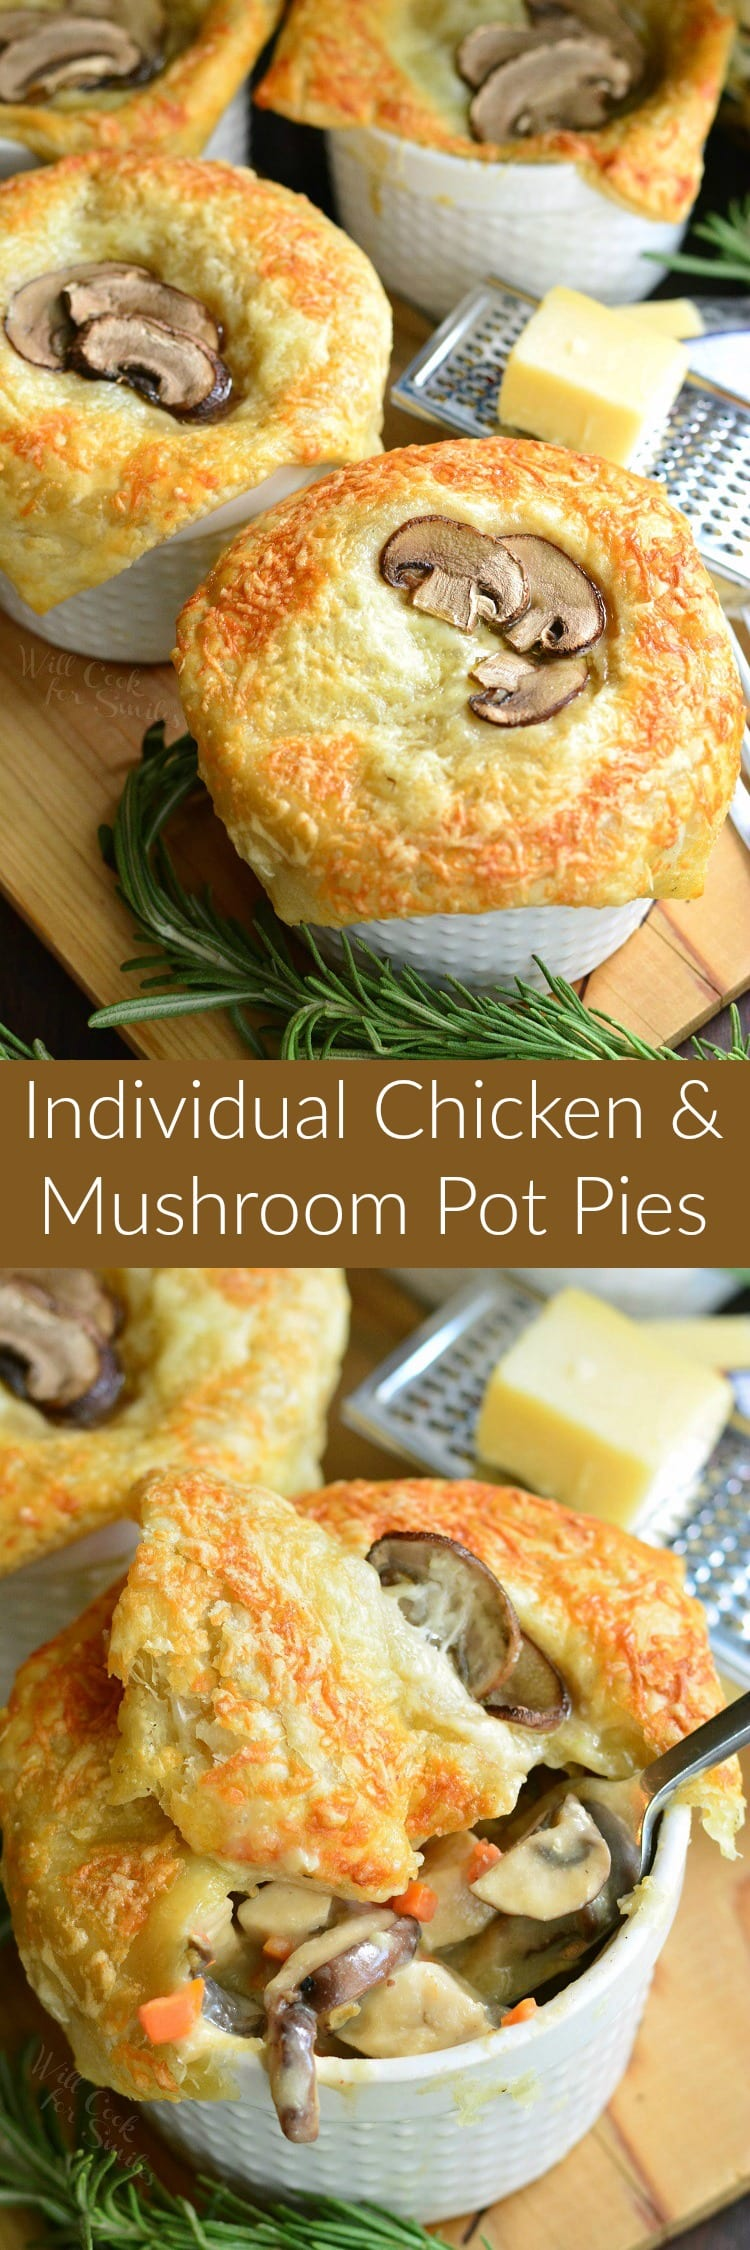 Individual Creamy Chicken and Mushroom Pot Pies. Individual, comforting pot pies are made with creamy chicken and mushroom mixture and topped with flaky puff pastry. These pot pies feature 3 types on mushrooms, pearl onions, and some fresh rosemary.